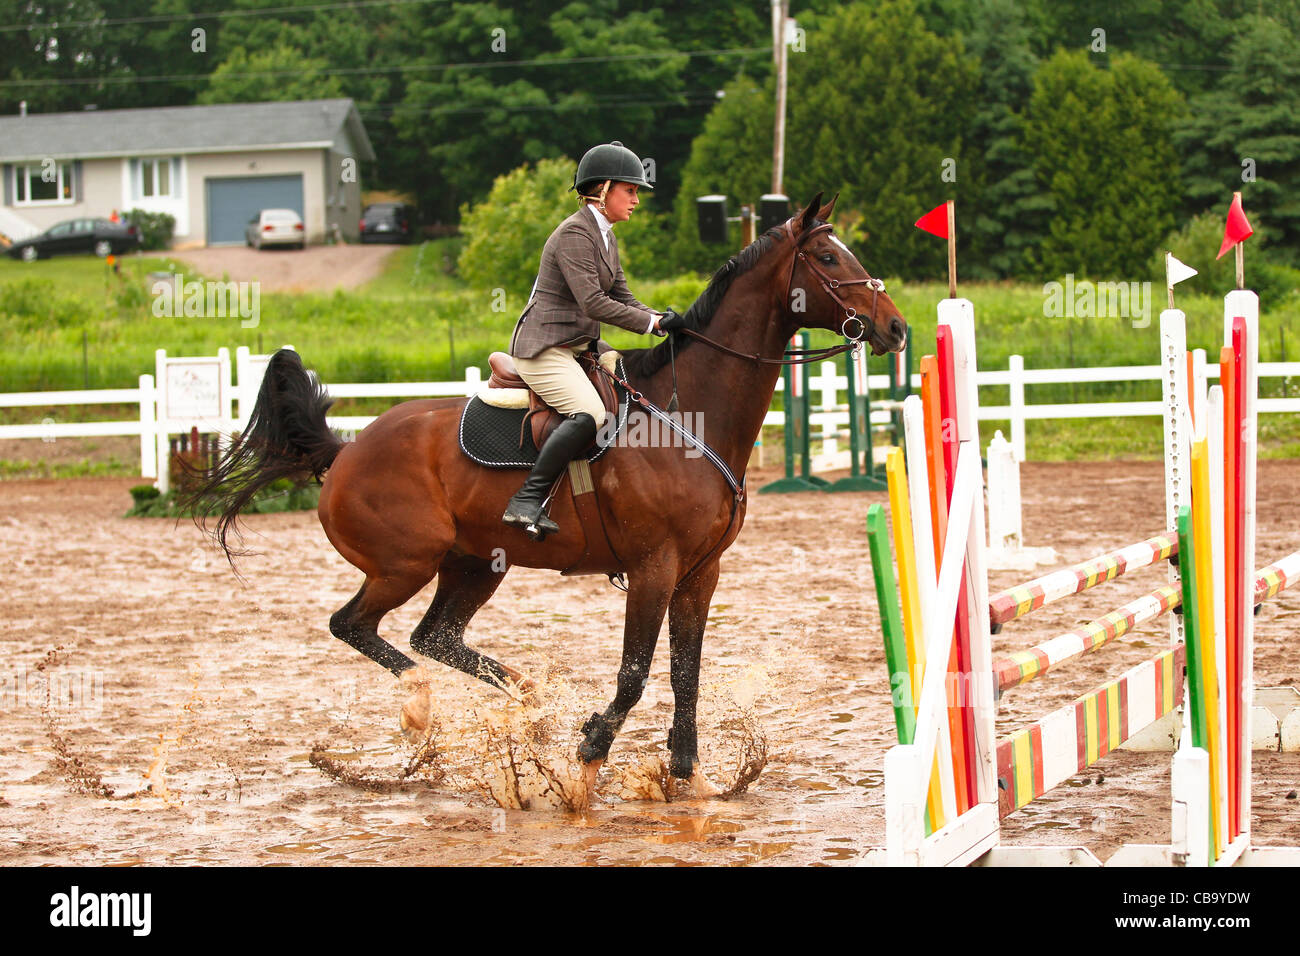 Bay horse at take off to jump fence on rainy day - Stock Image